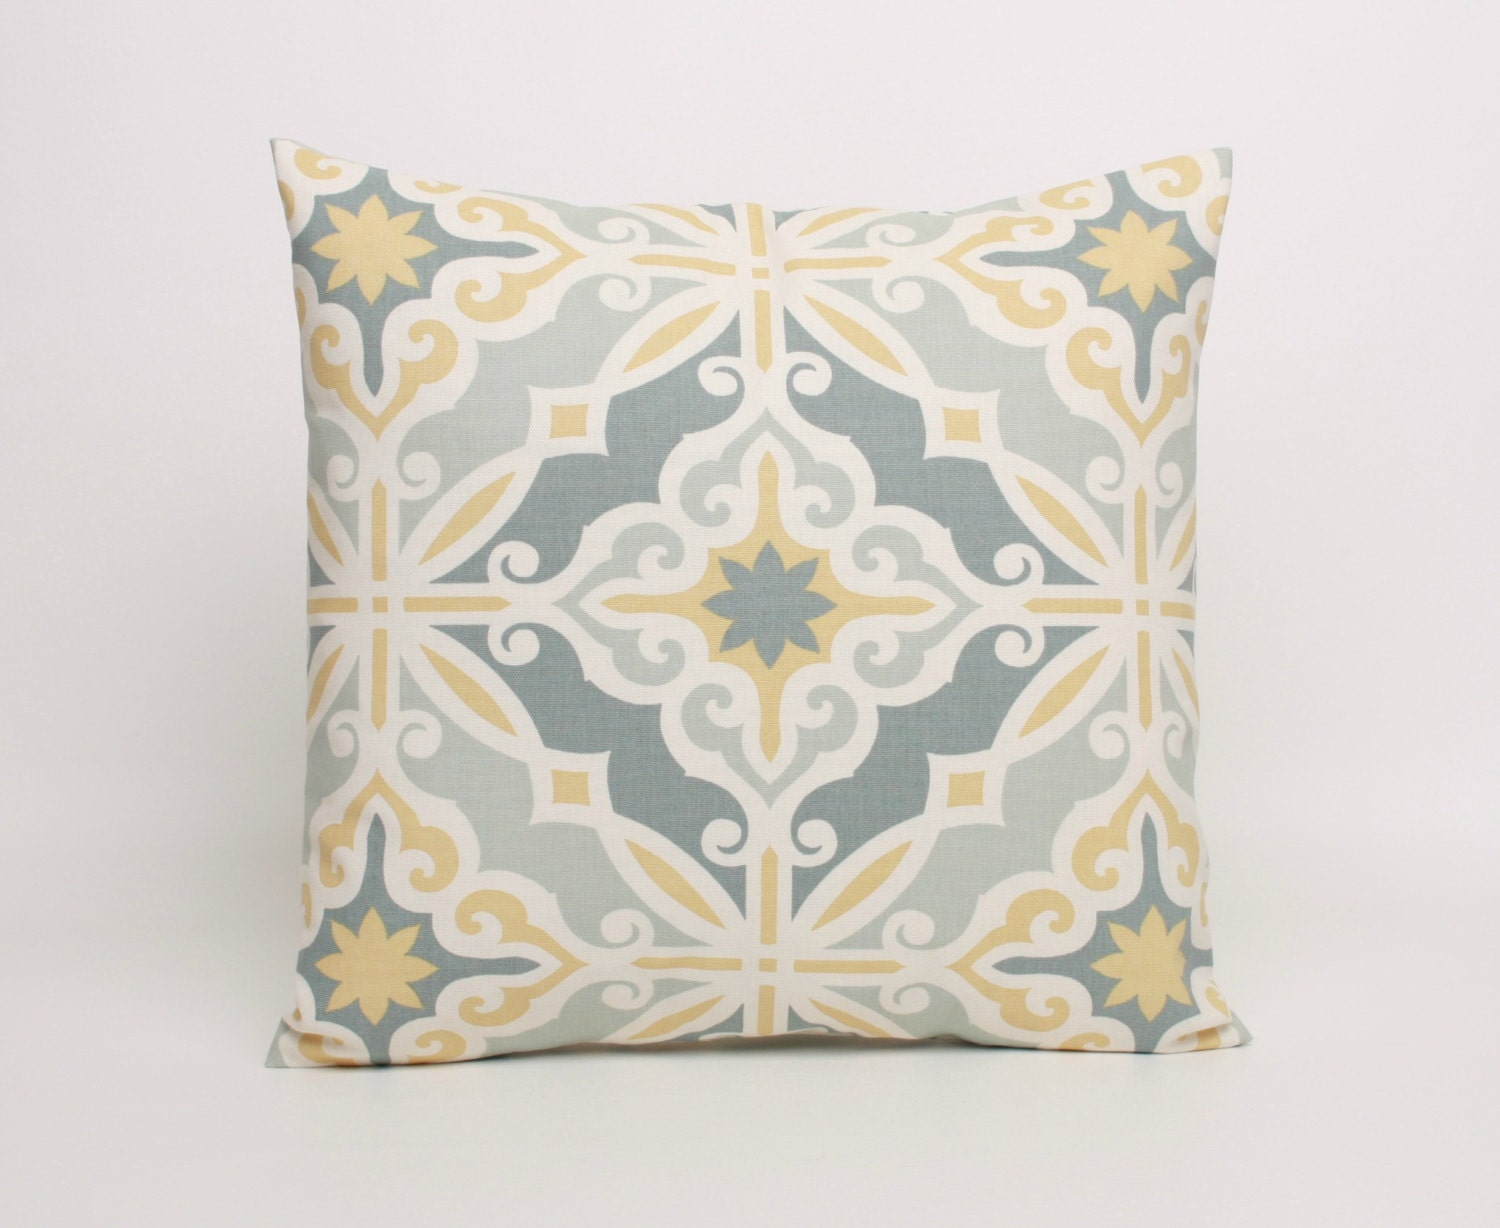 Throw Pillow Cover And Insert : Yellow and Gray Throw Pillow Cover 22x22 by DimensionsHomeDecor